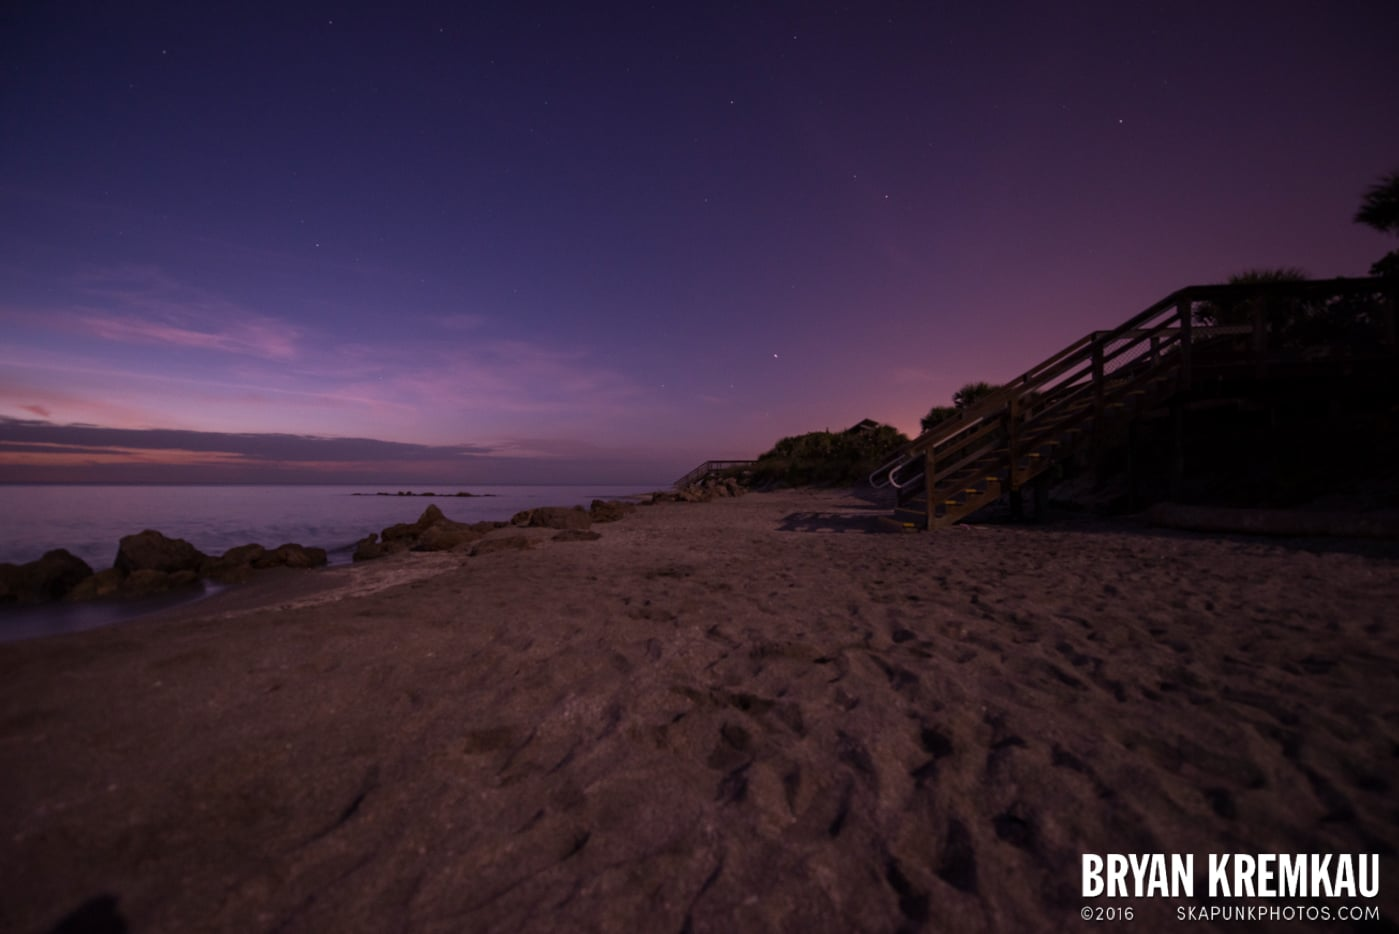 Sunsets, Astrophotography & Birds @ Venice, Florida - 10.25.14 - 11.5.14 (50)